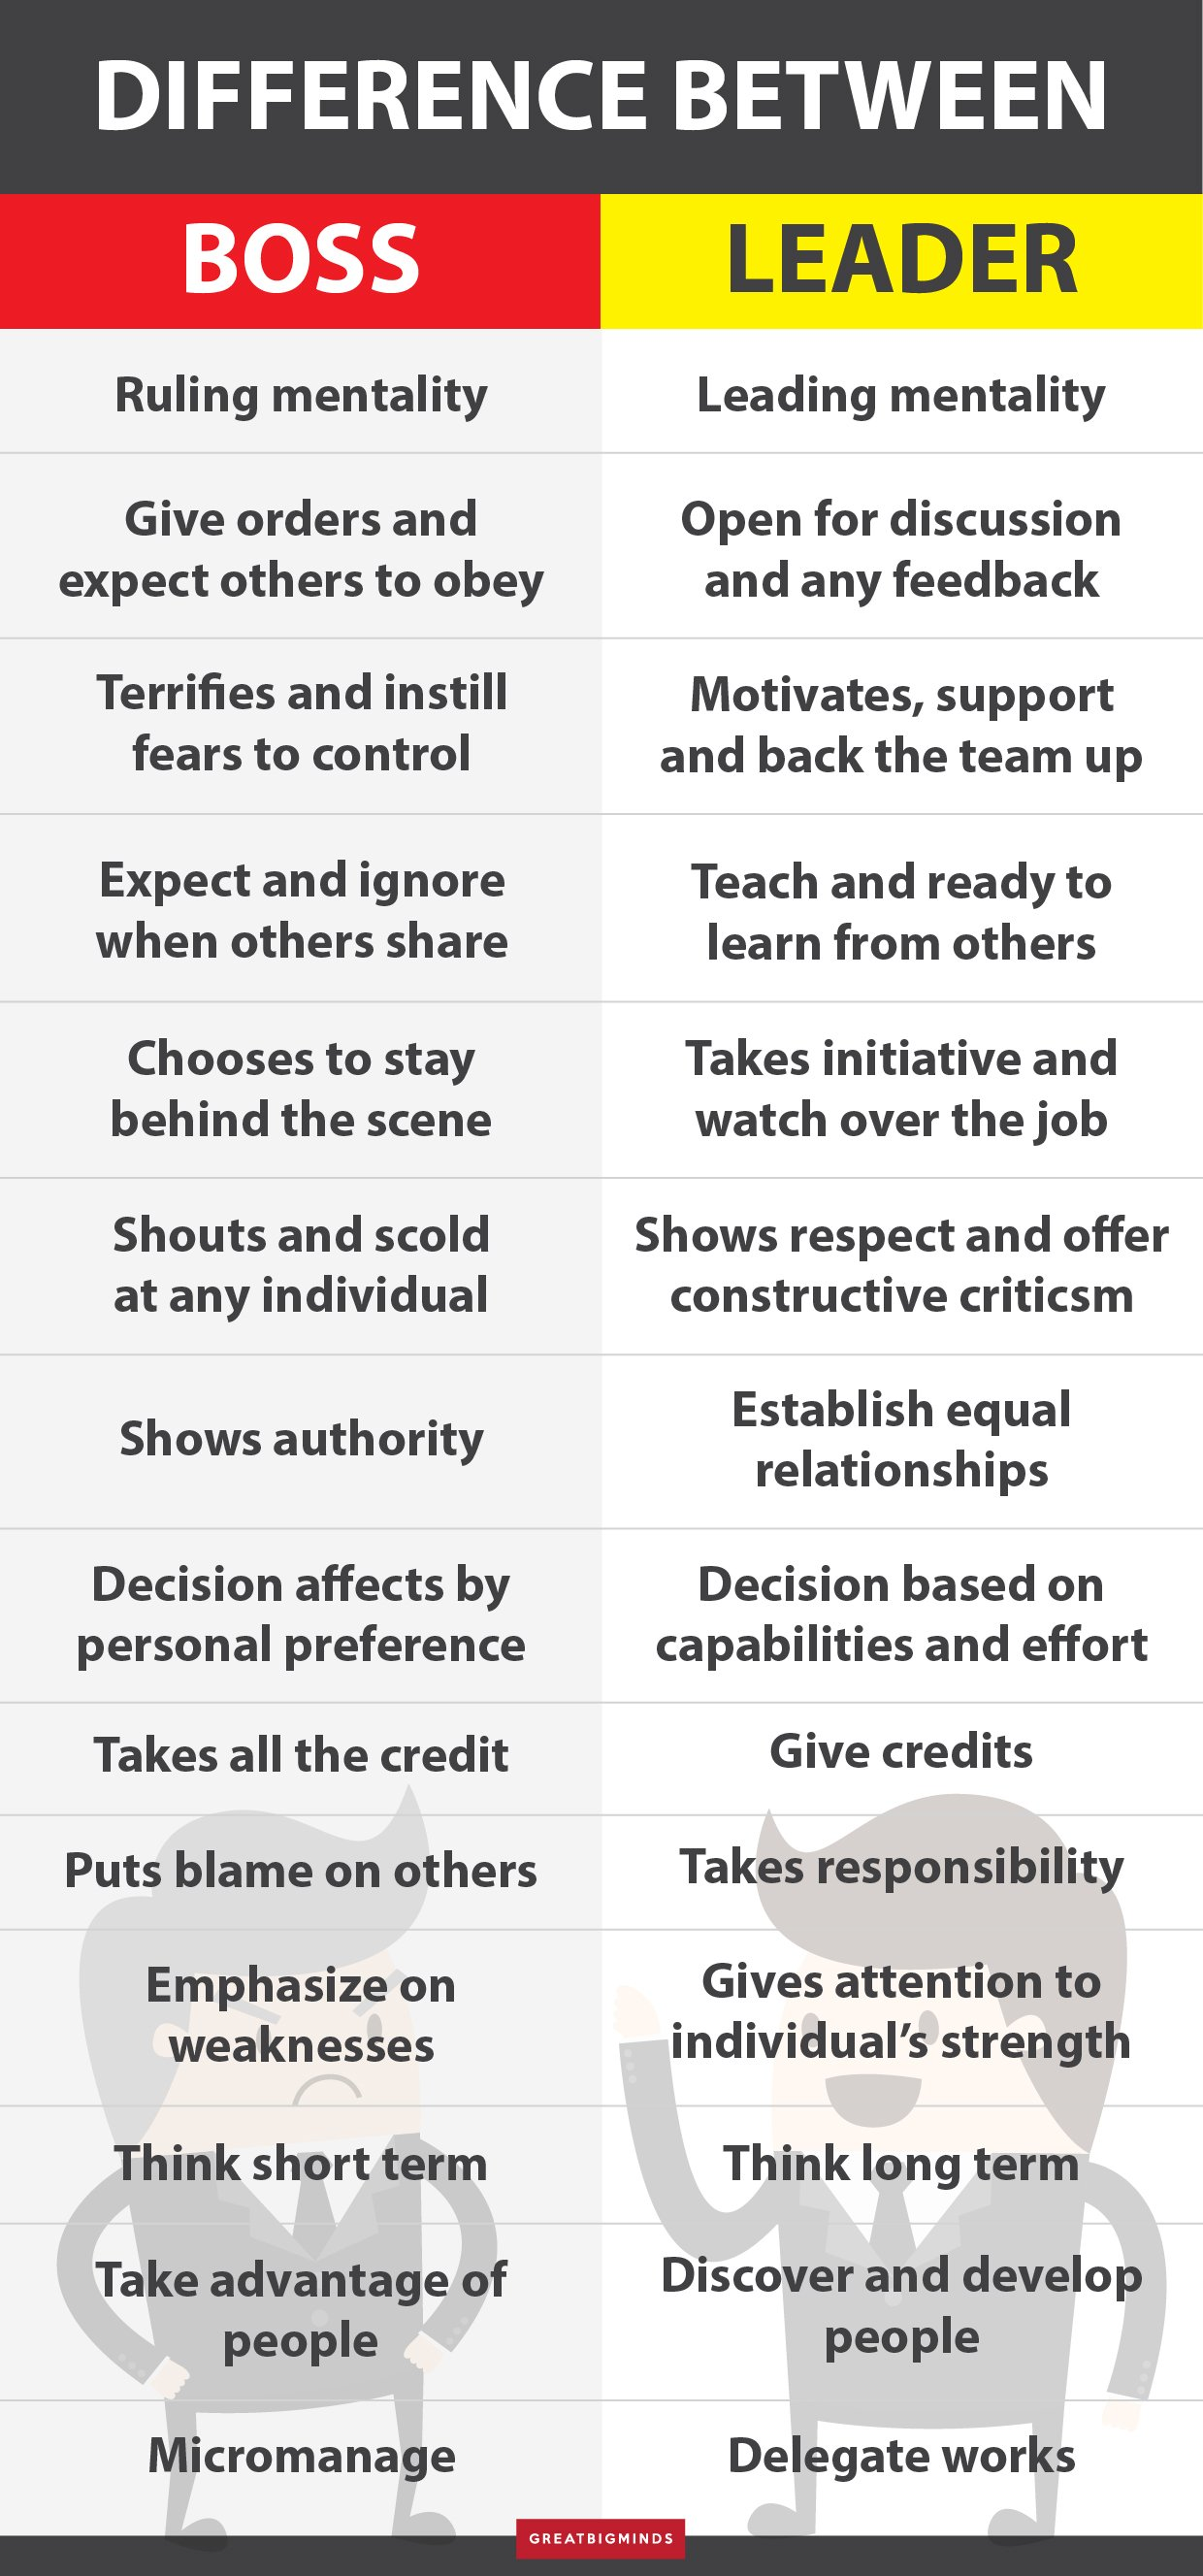 DIFFERENCE BETWEEN BOSS AND LEADER-01